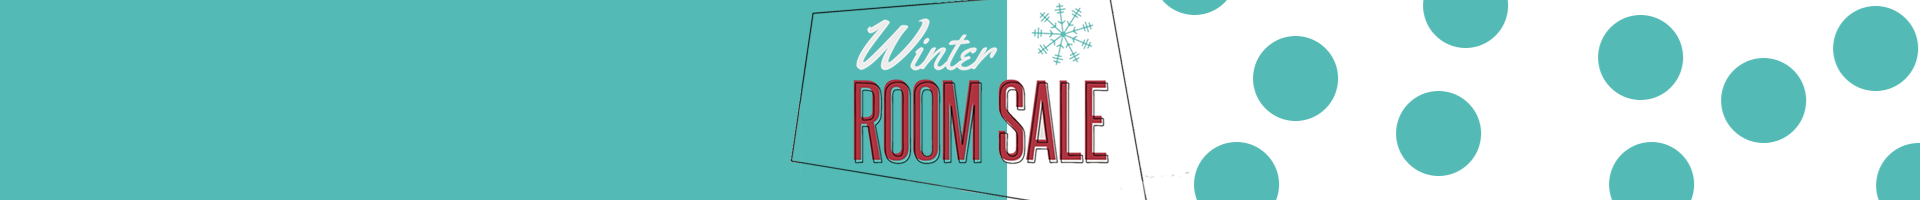 Winter Room Sale